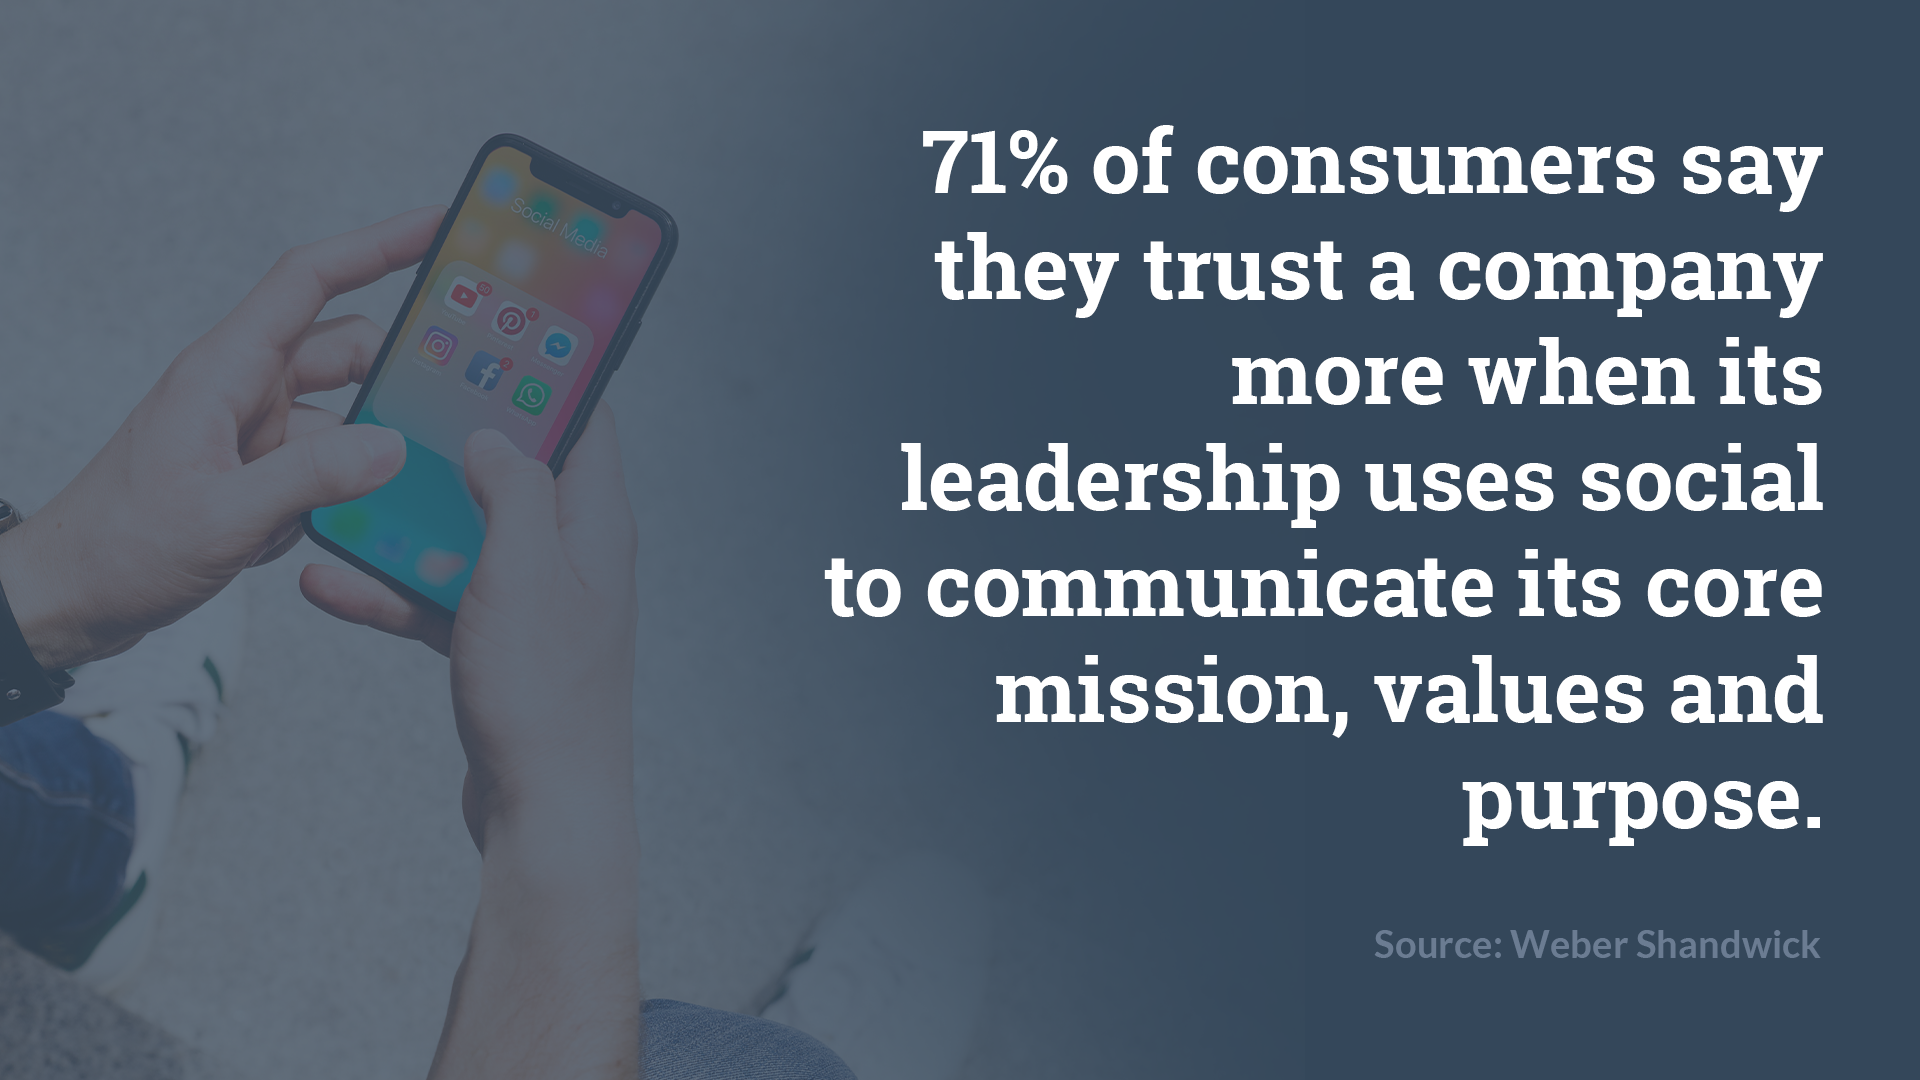 71% of consumers say they trust a company more when its leadership uses social to communicate its core mission, values and purpose